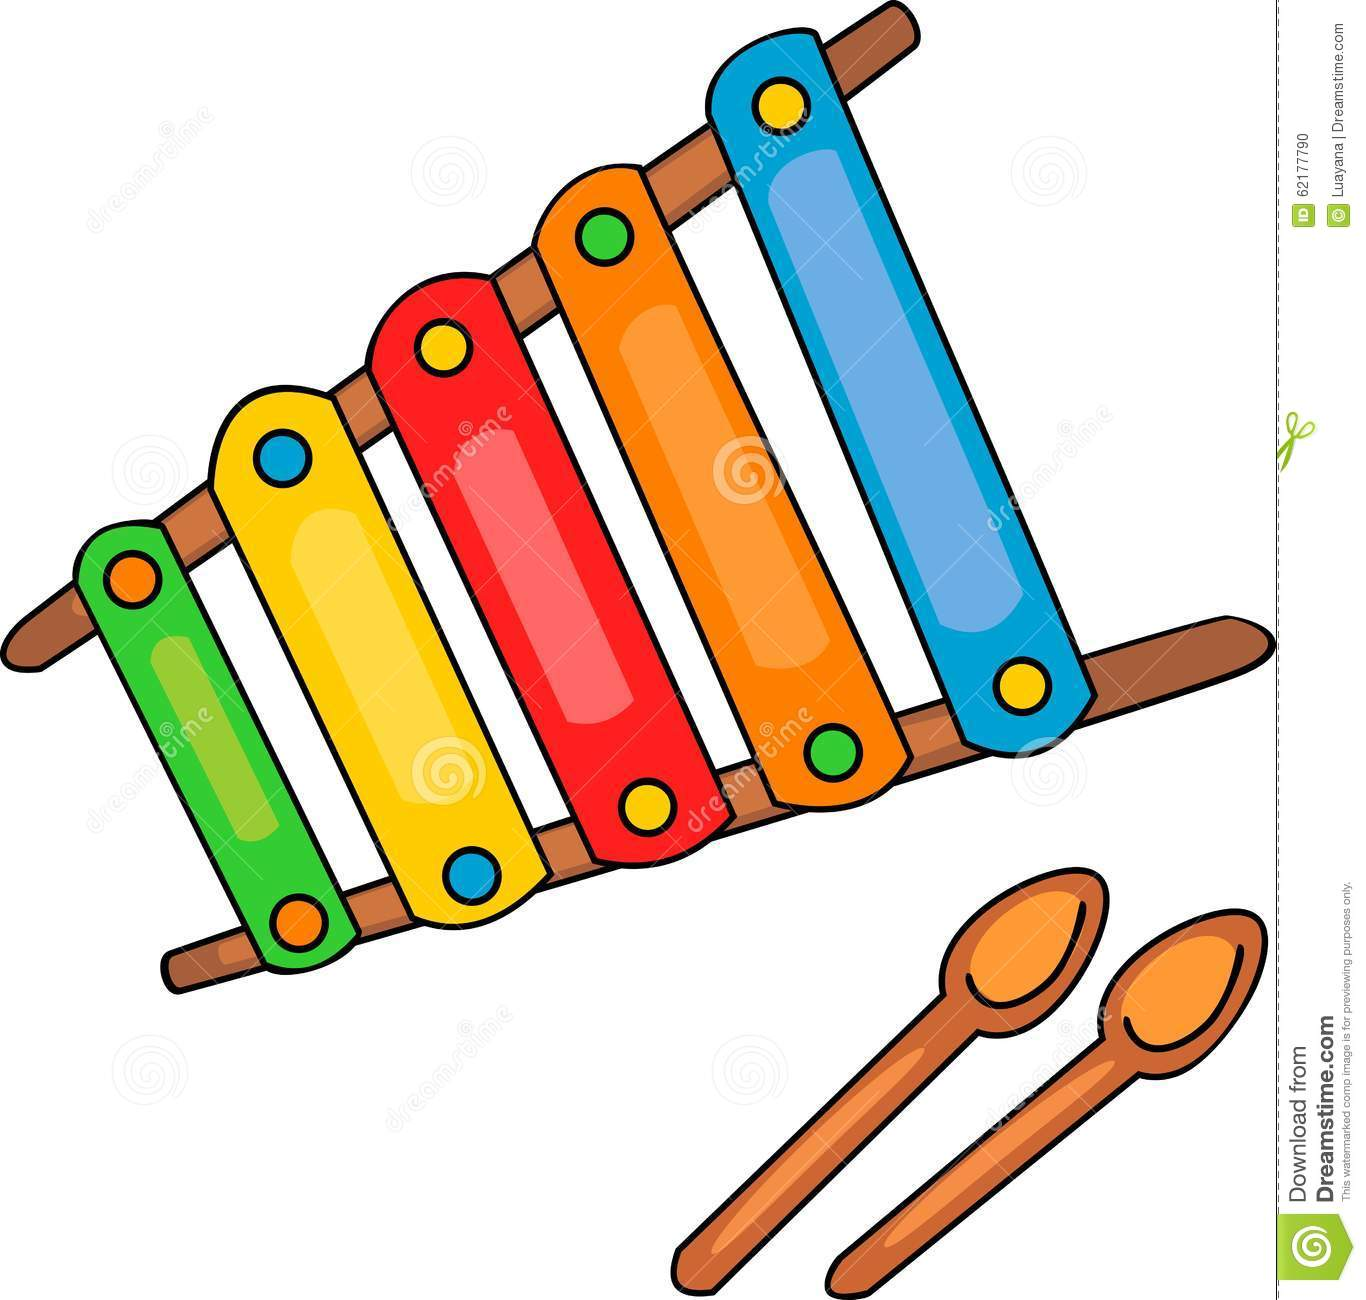 Xylophone stock vector. Illustration of cartoon, white ...